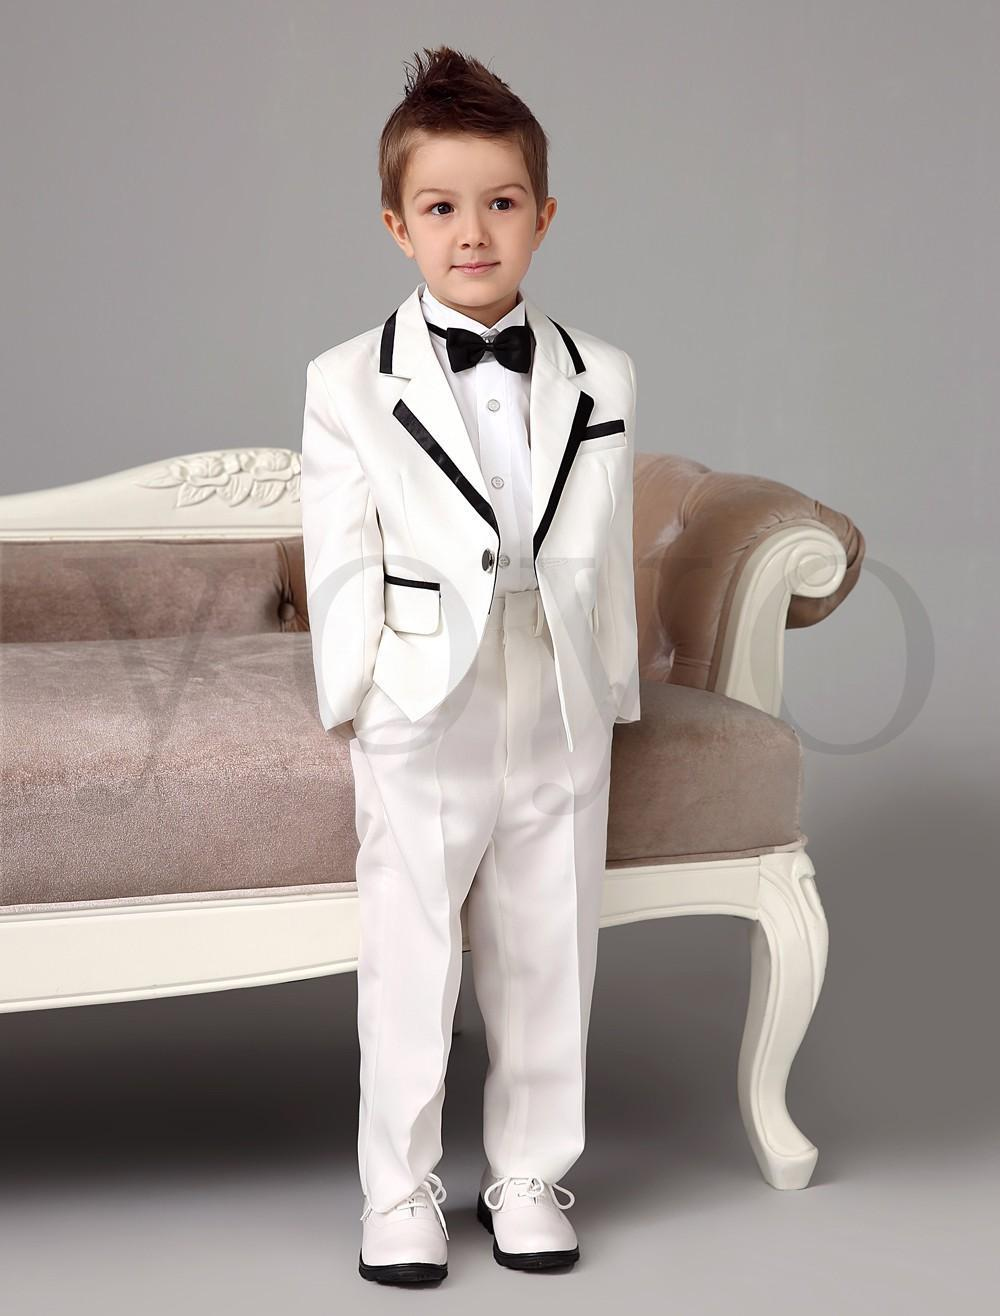 2016 New Popular Custom Handsome Wedding Boy Ring Bearer Suit Boy ...